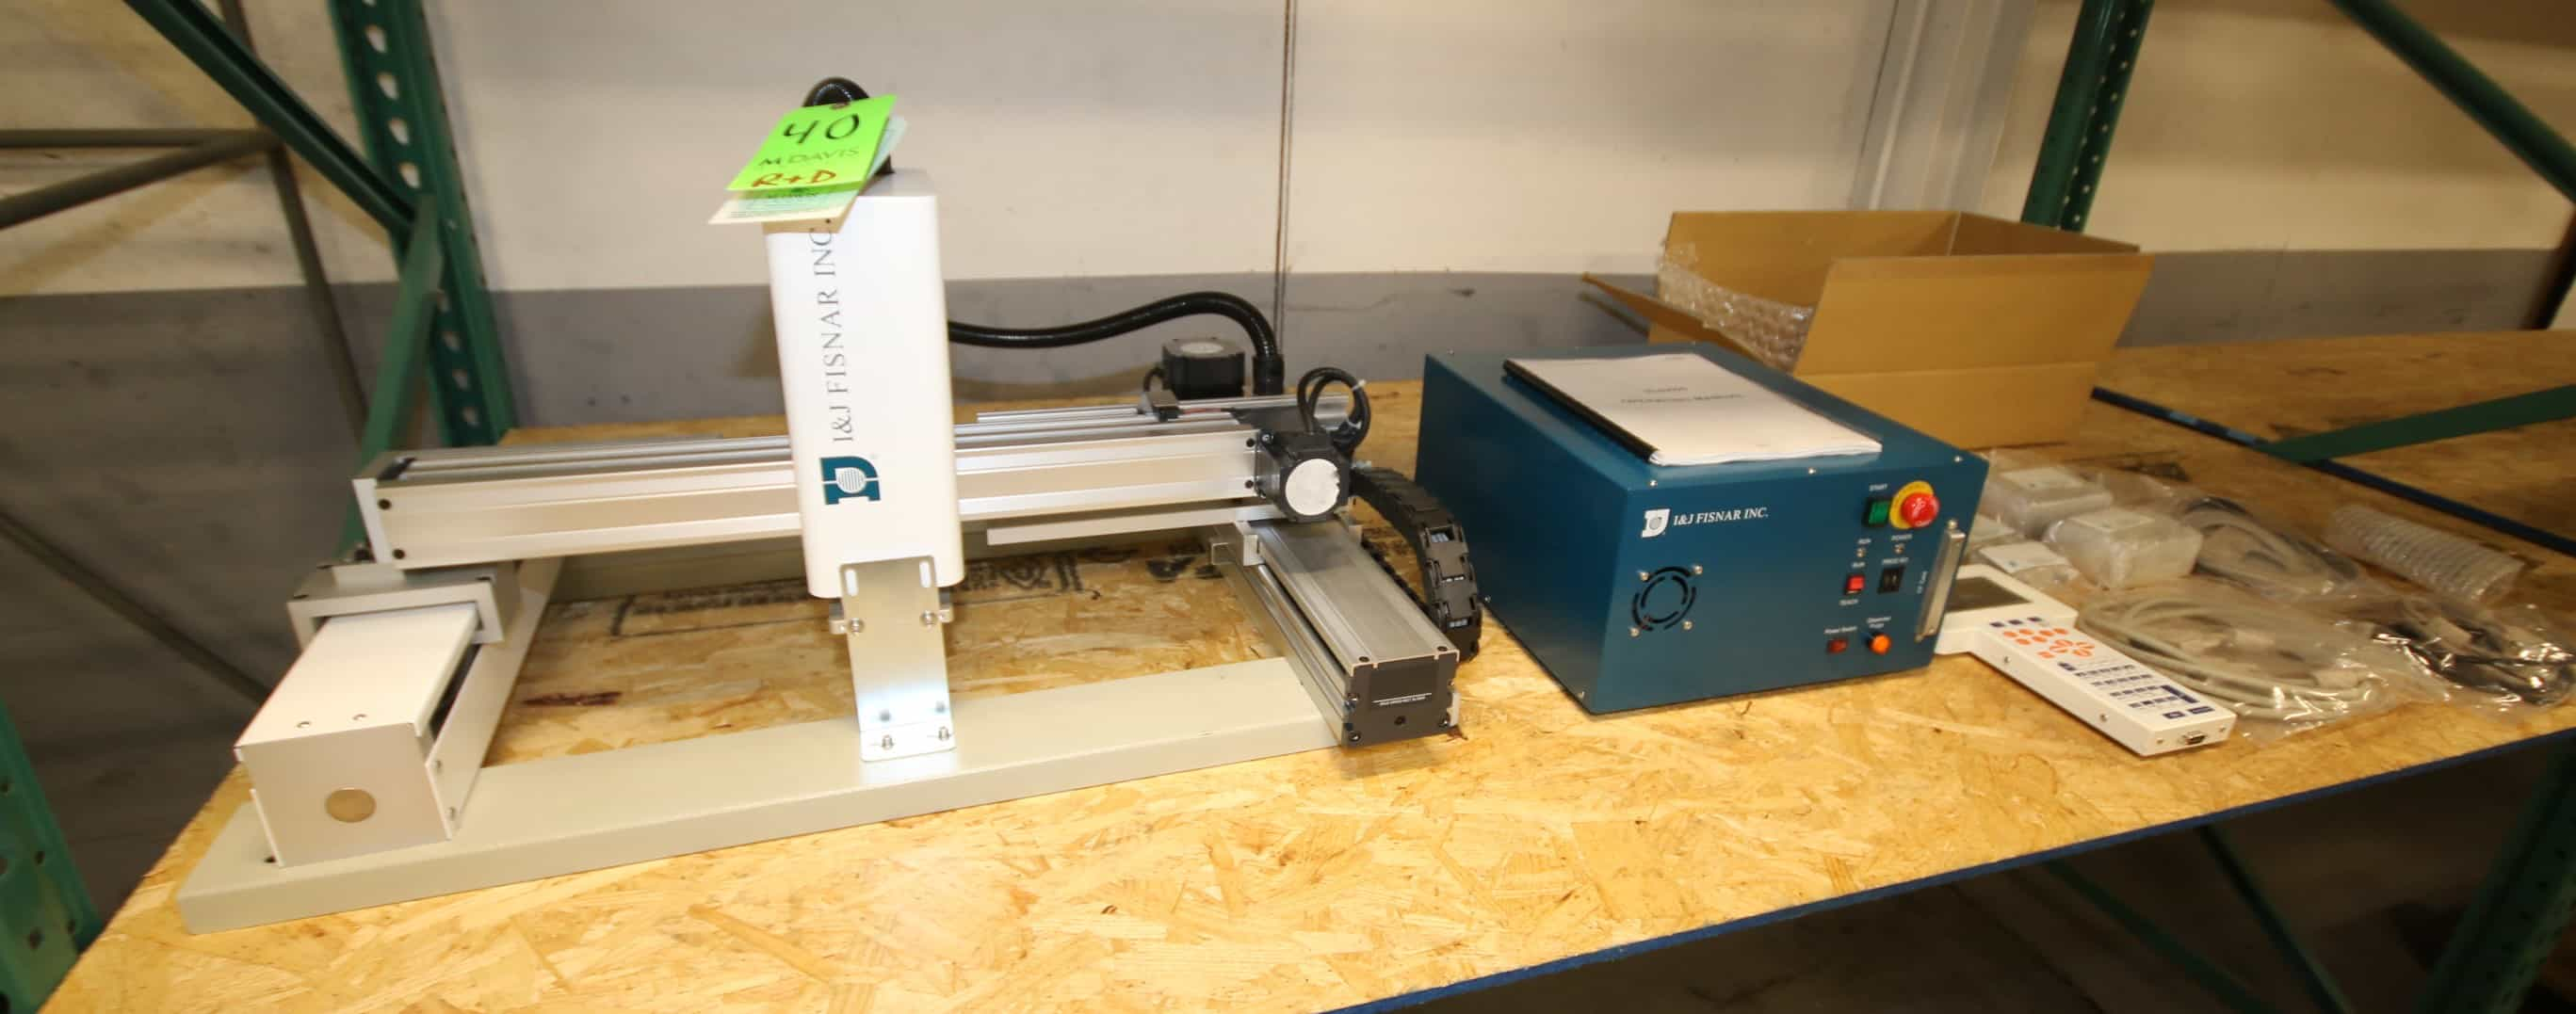 I & J Fisnar Inc Benchtop Robot Dispenser, Model I&J6431, SN 169.004, with X, Y & Z Axis, Includes Control Tower with Hand Held Controller & Accessory, 115V, Includes Manual